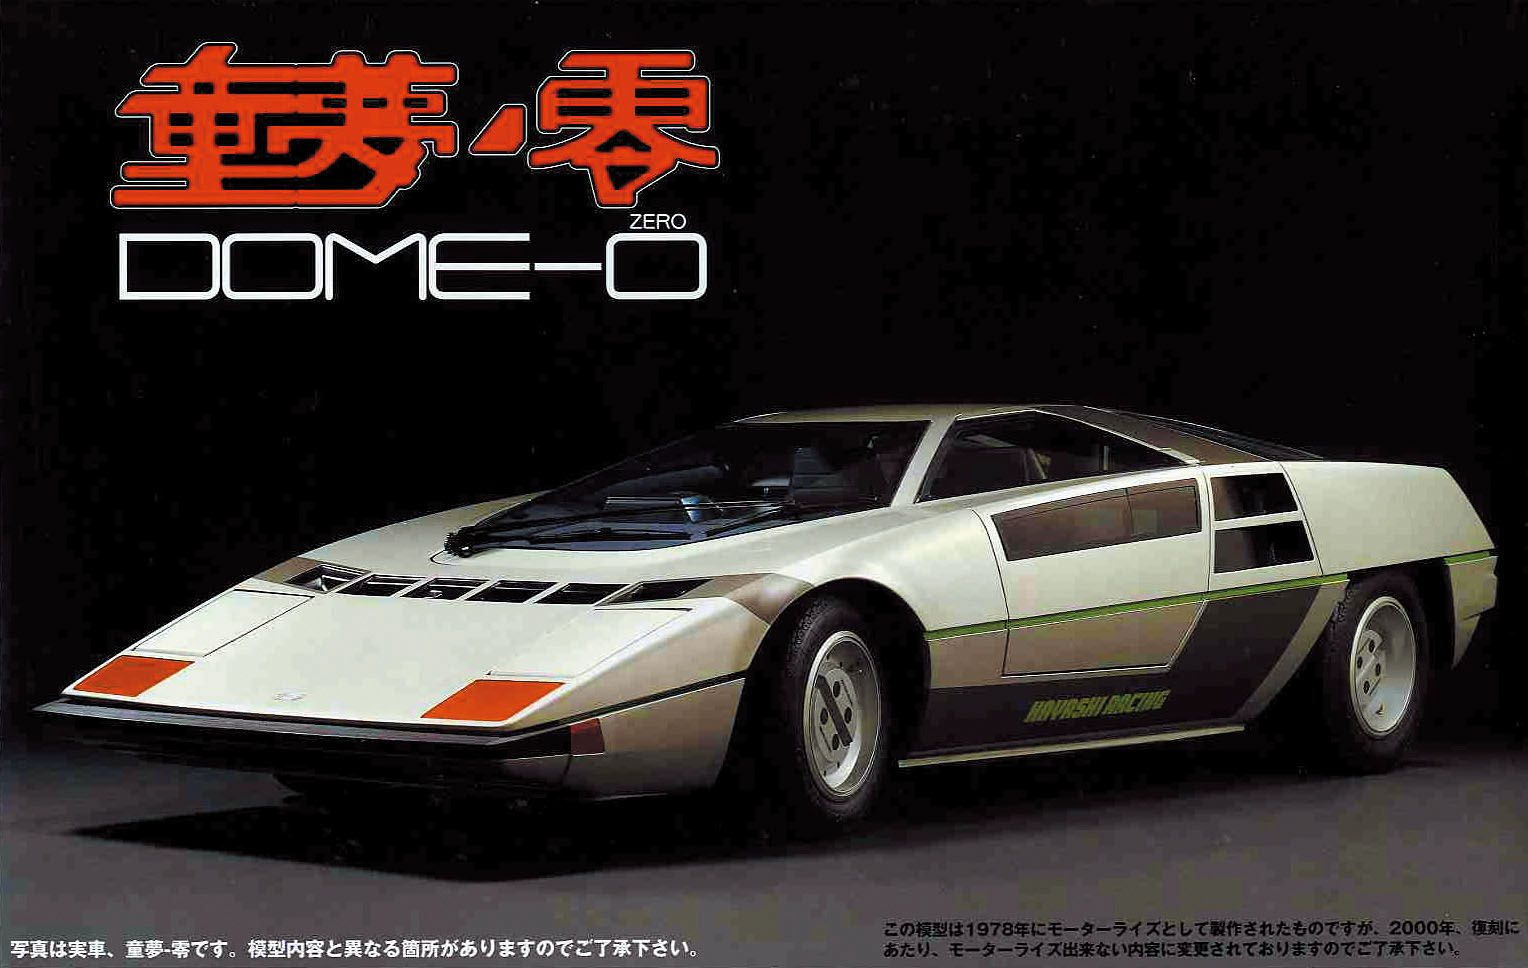 Dome 0 Zero 80s Japanese Concept Car Awesome Post Concept Cars Vintage Concept Cars Super Cars